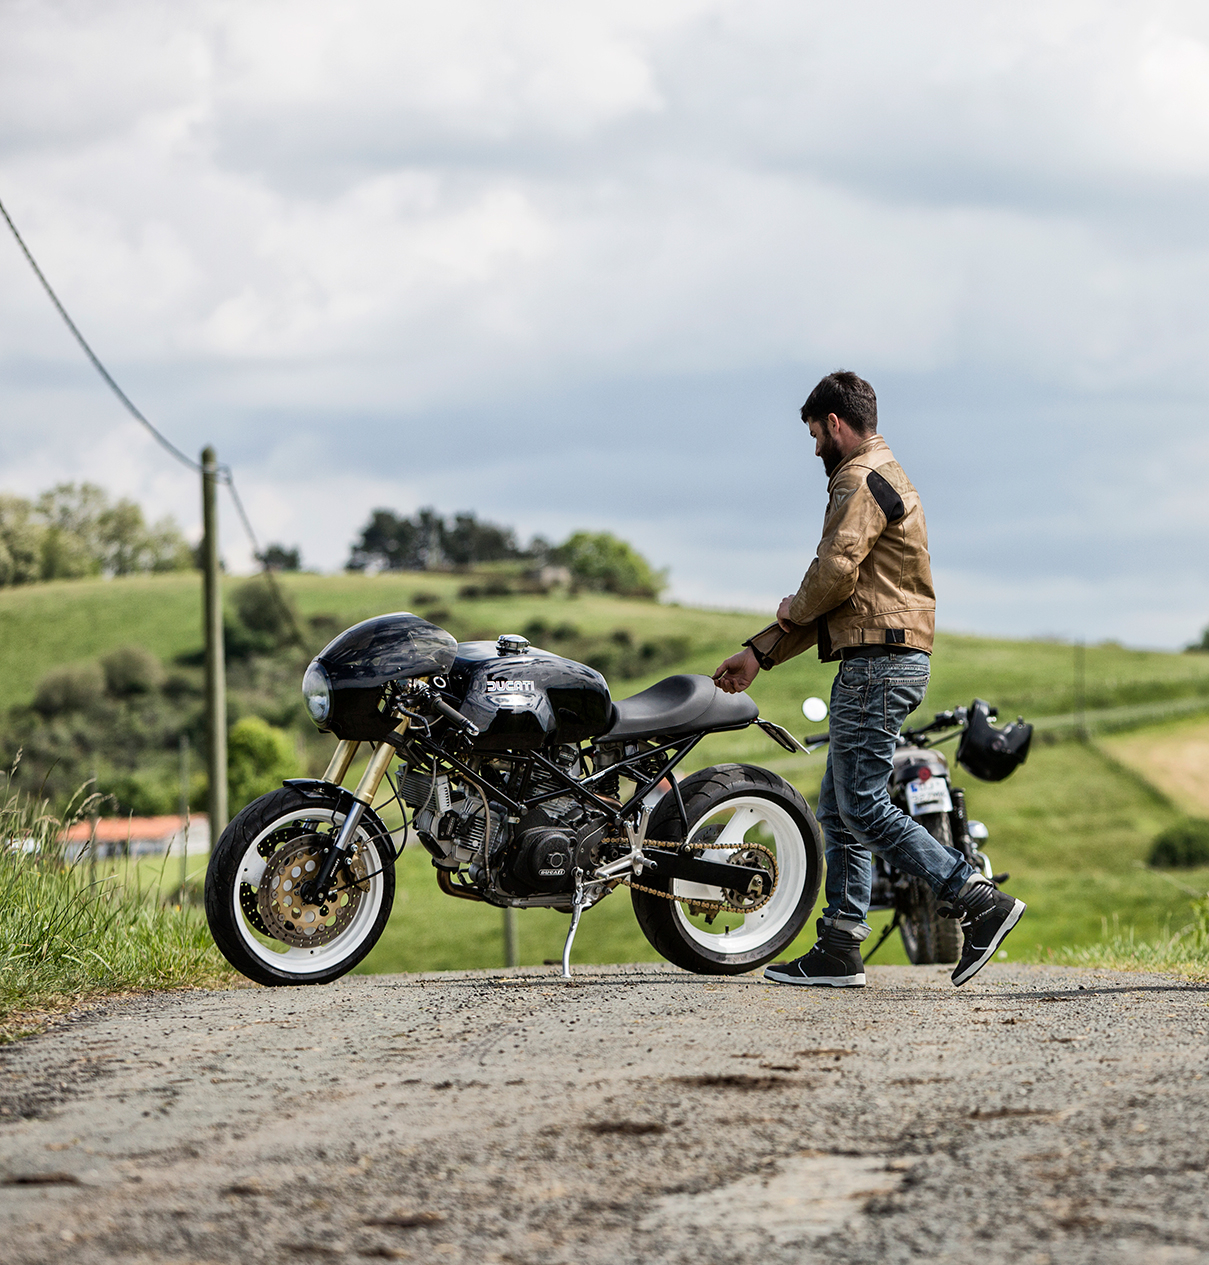 Online or off-line: where to buy motorcycle boots?